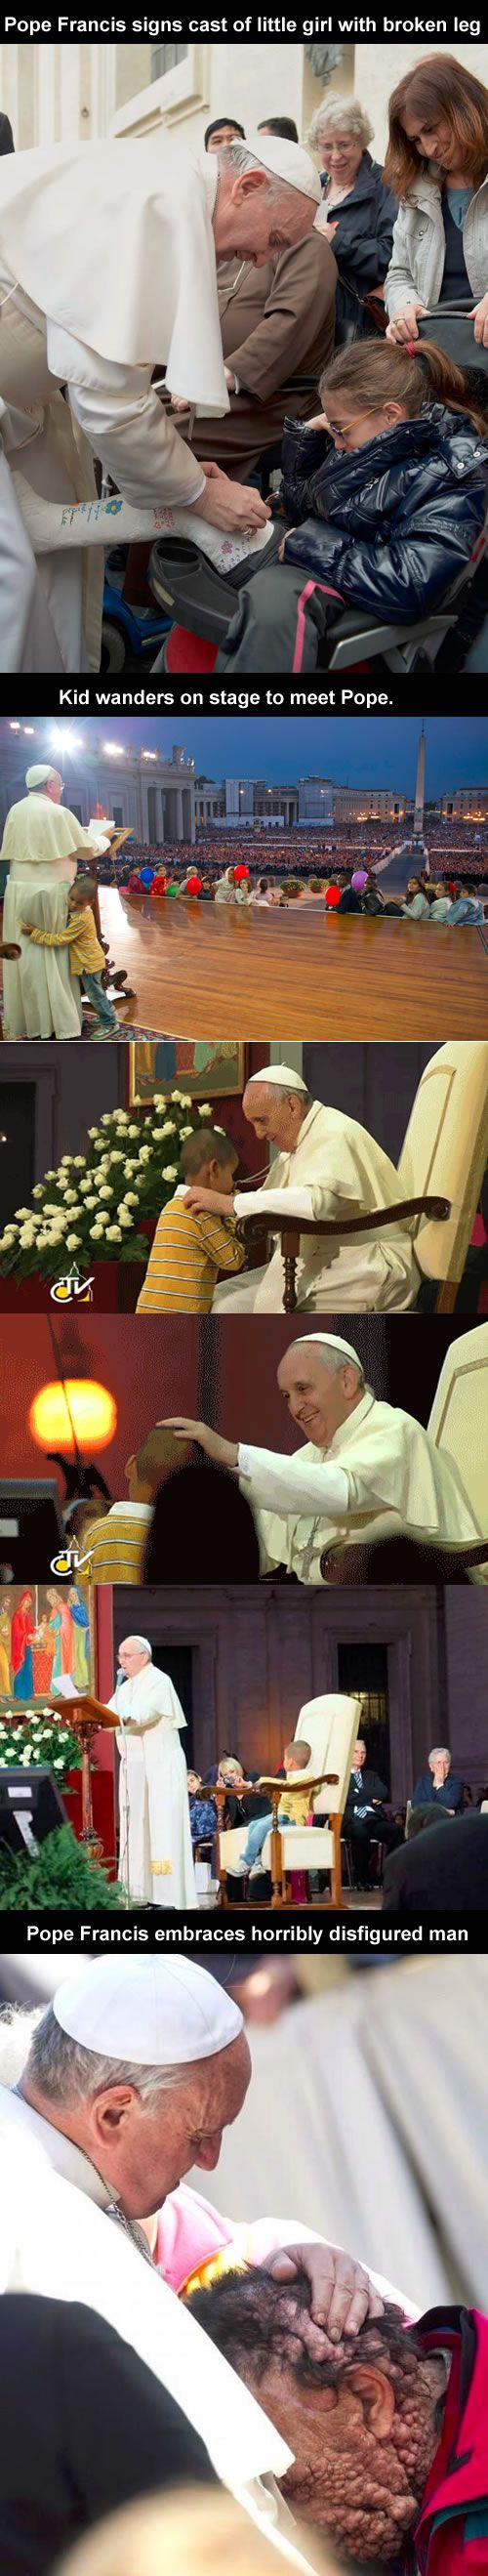 Not funny, but I'm not even Catholic and this guy is my hero.Pope Francis signs cast of little girl with broken leg; Kid wanders on stage to meet Pope; Pope Francis embraces horribly disfigured man.